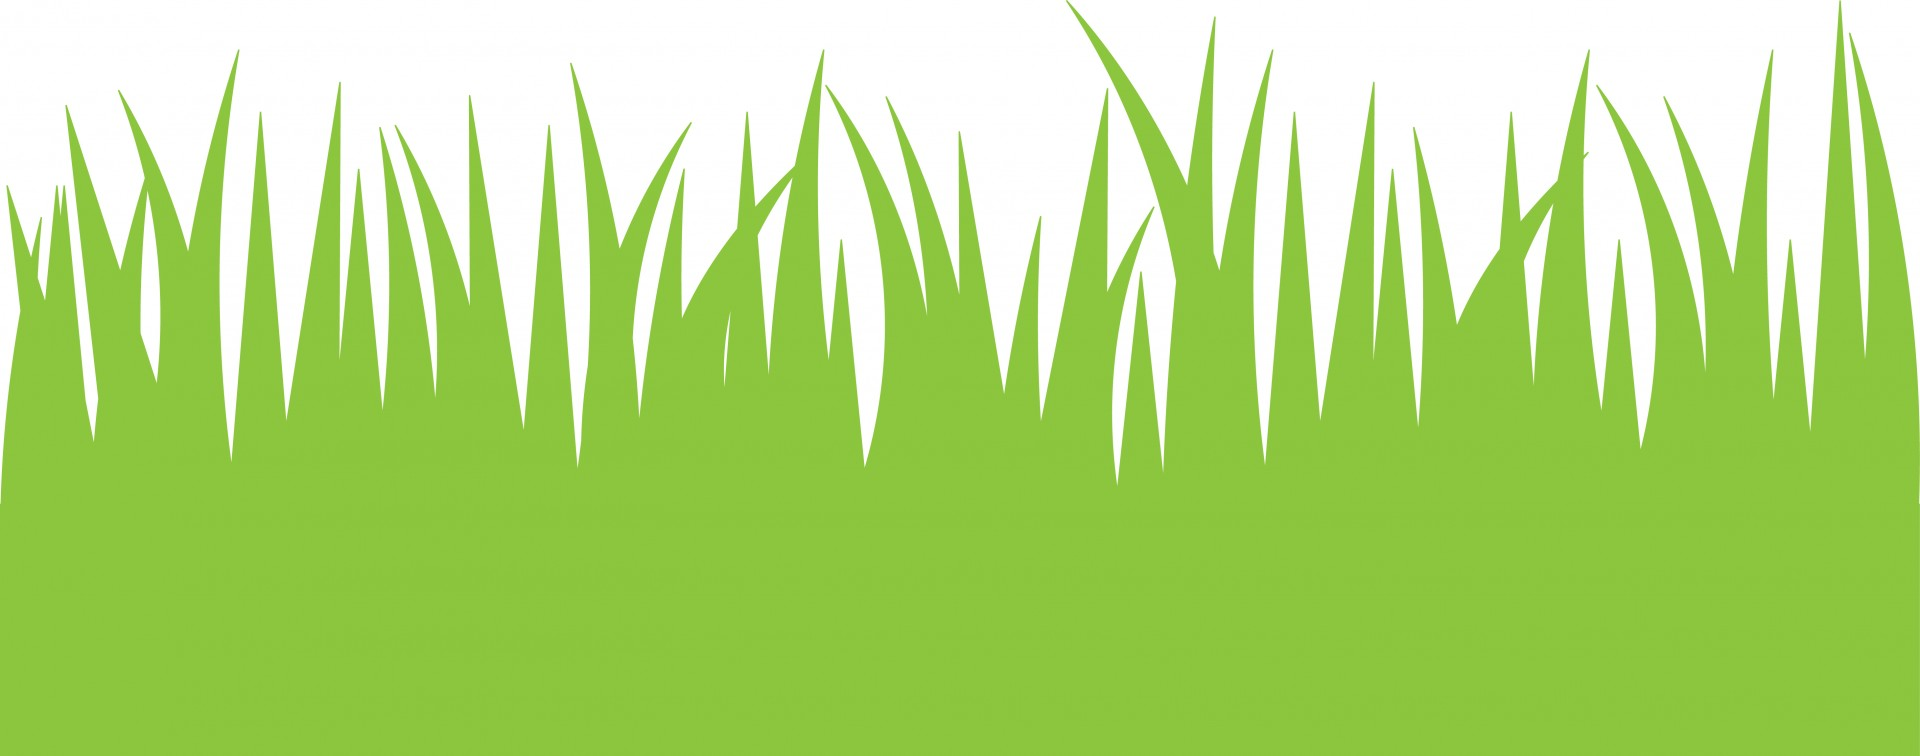 Lawn care clipart grass pattern. Free wallpapers for your